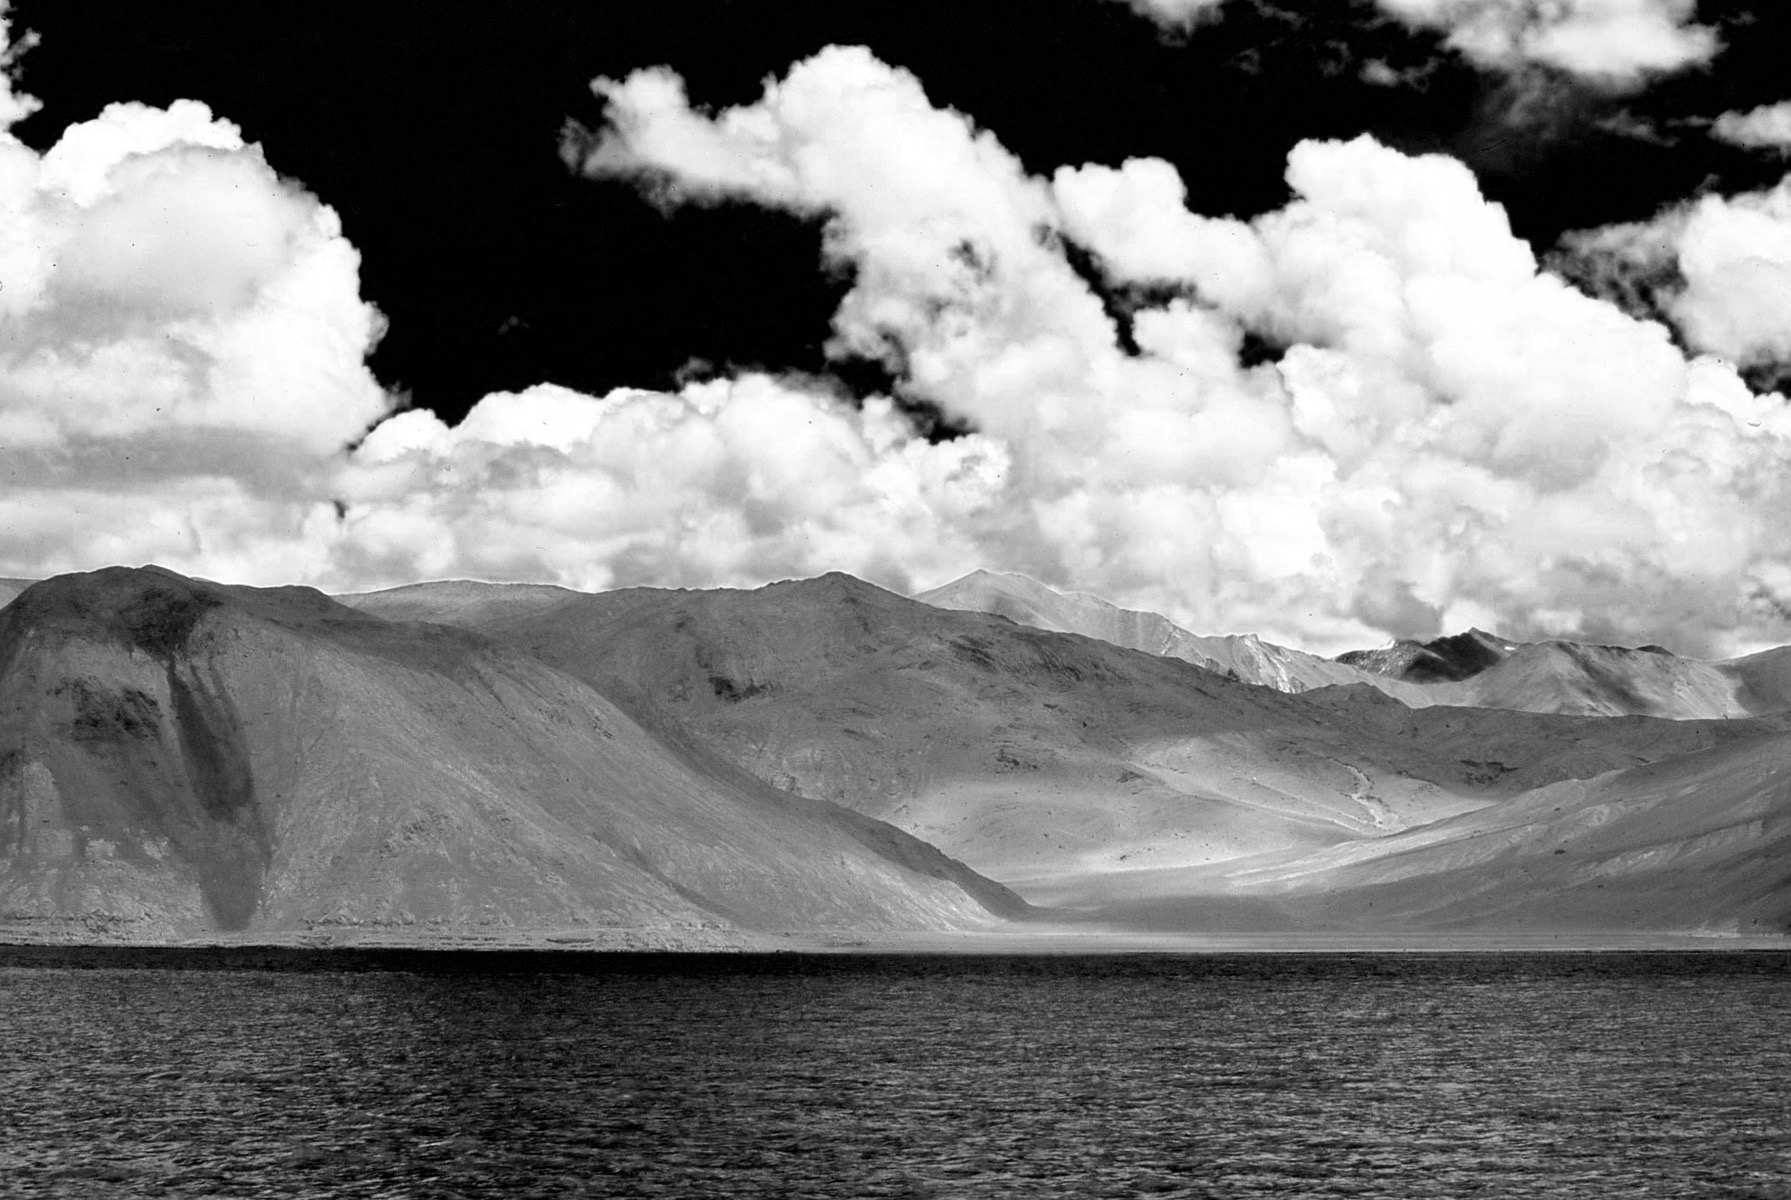 During full monsoon in Ladakh I have taken this dramatic picture at Pangong lake